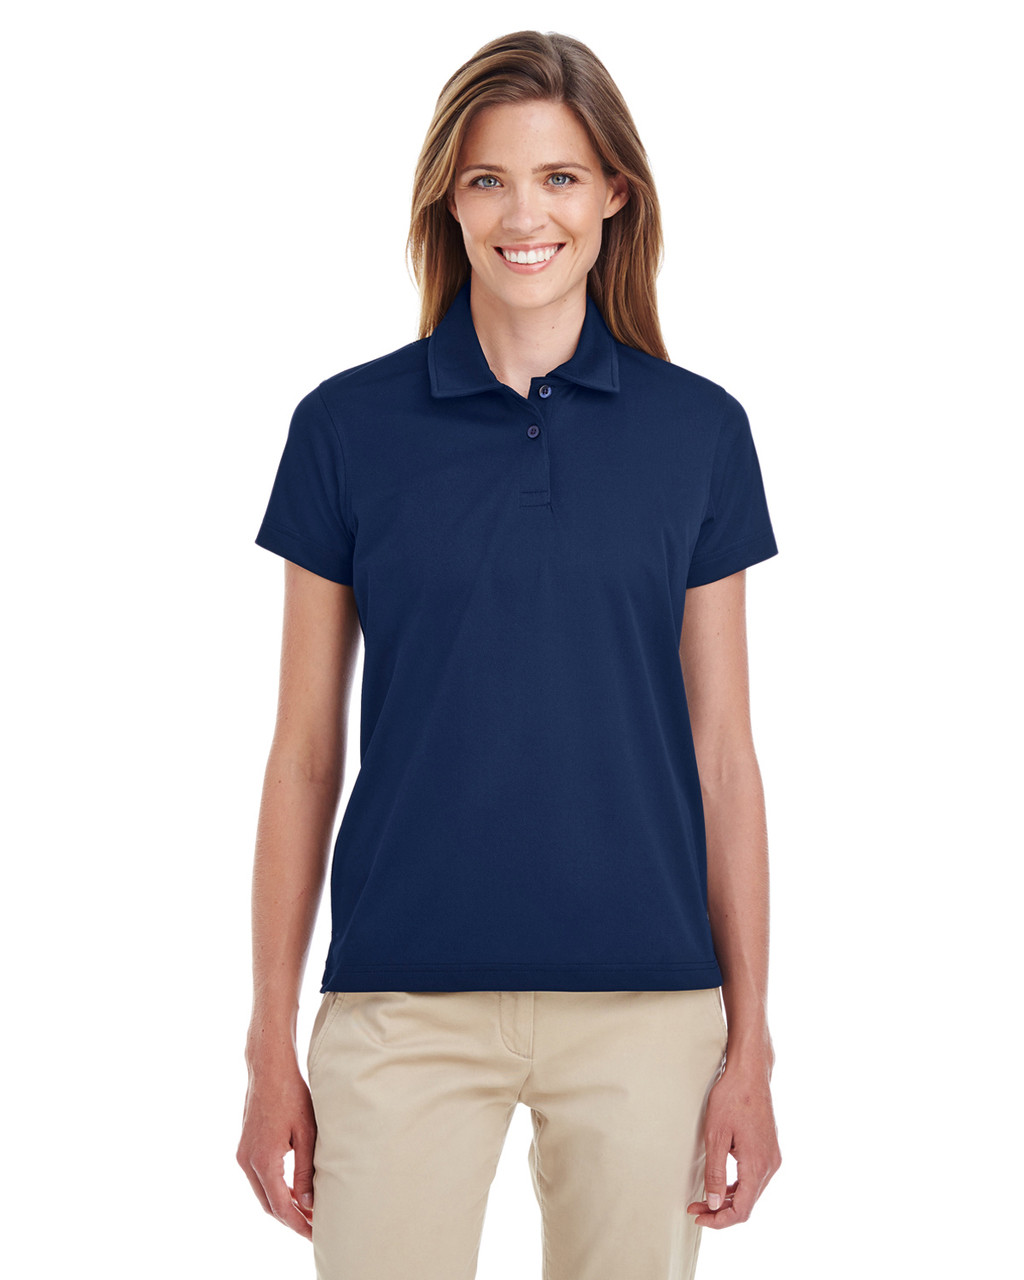 Sport Dark Navy - TT21W Team 365 Ladies' Command Snag Protection Polo Shirt